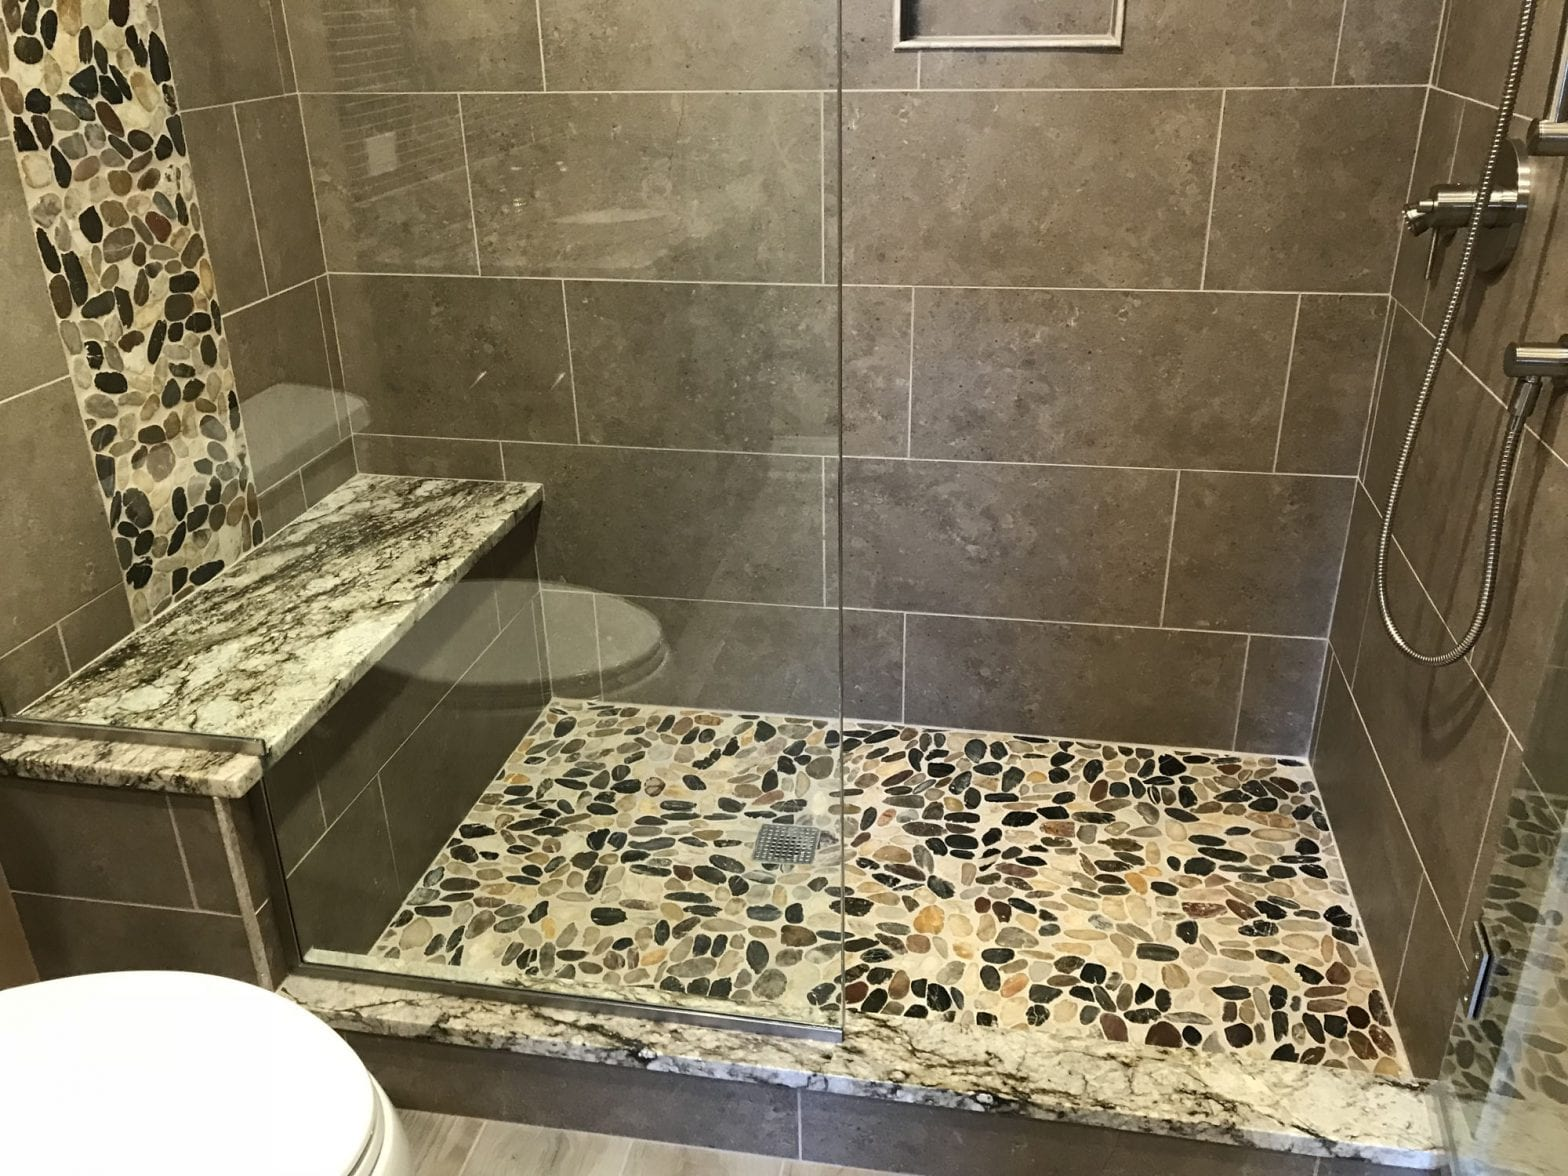 Bathroom Remodeling in South Barrington - new shower tile, aggragate